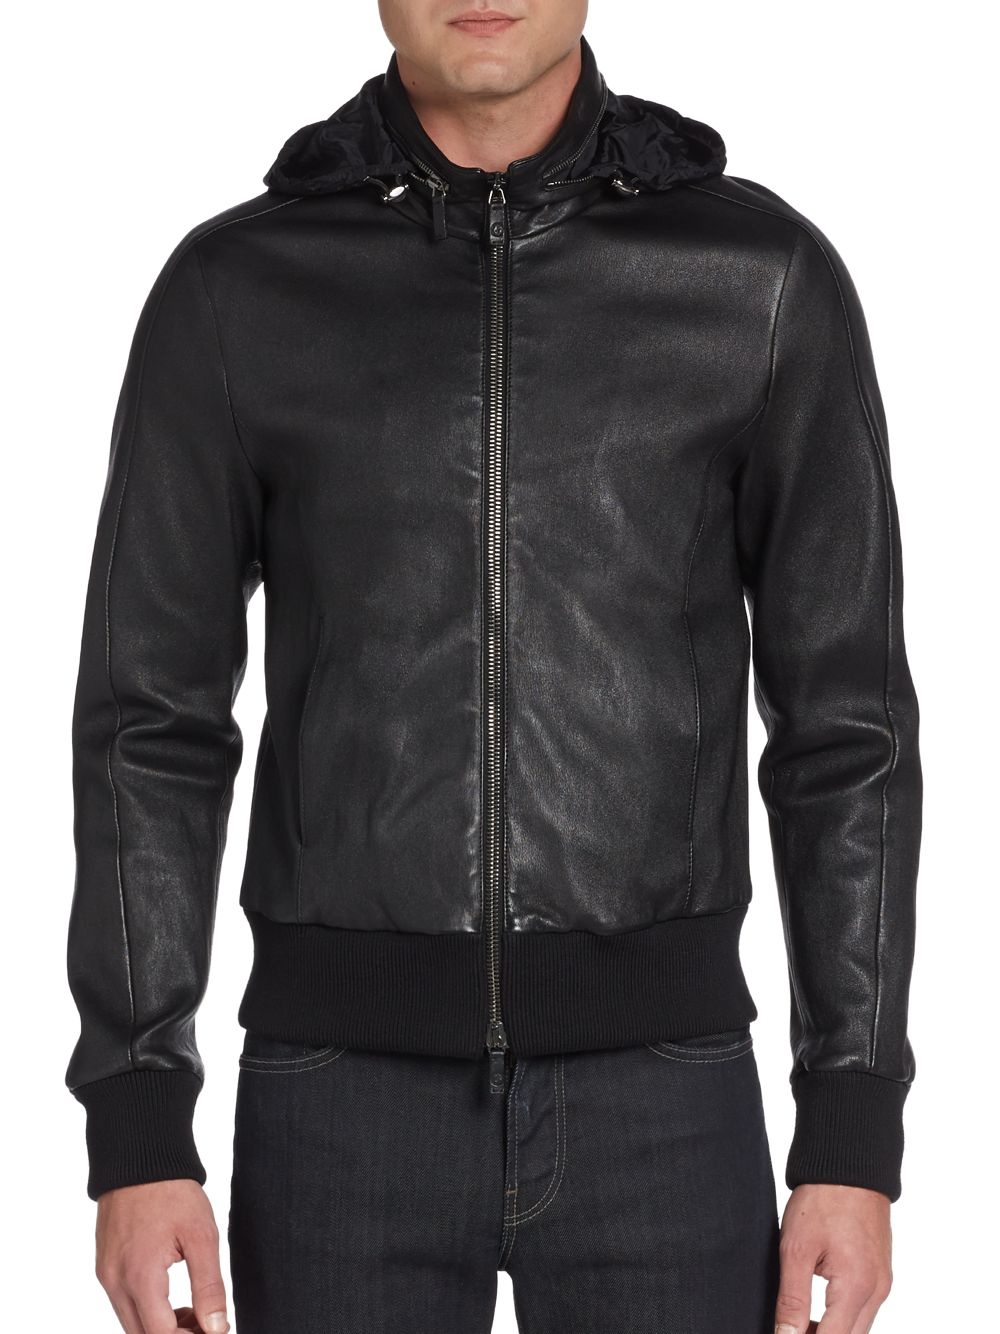 Lyst - Giorgio Armani Hooded Leather Bomber Jacket in Black for Men c0a1ed3e1